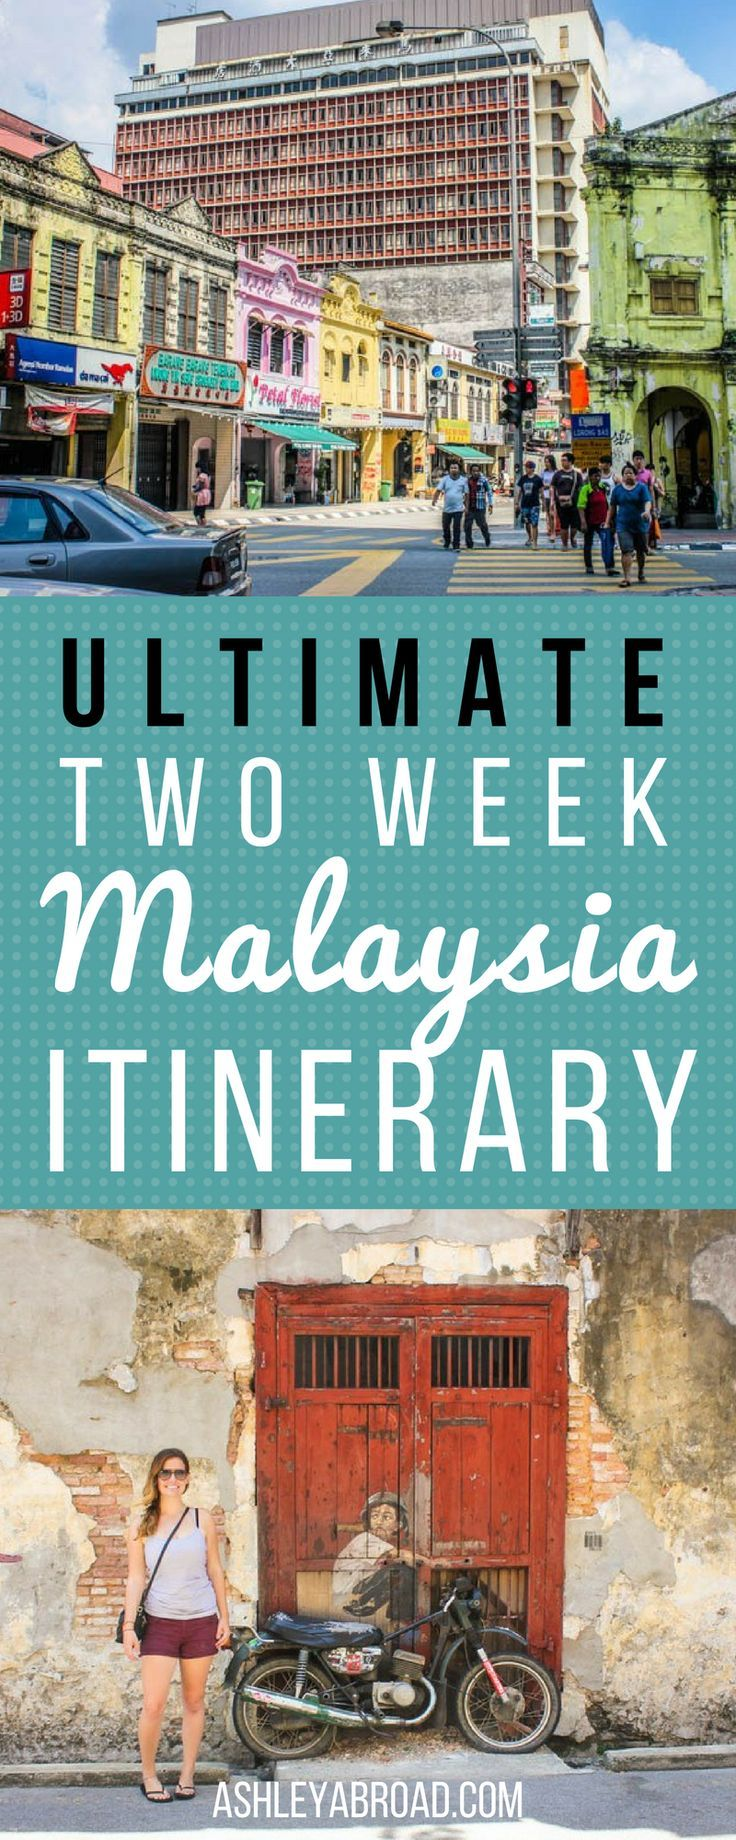 The Ultimate Two Week Malaysia Itinerary. Malaysia is a country of diverse and vibrant cities, verdant rice paddies and wild, red-earthed jungle. Second only to Singapore, Malaysia is the richest country in Southeast Asia, making public transit a breeze a